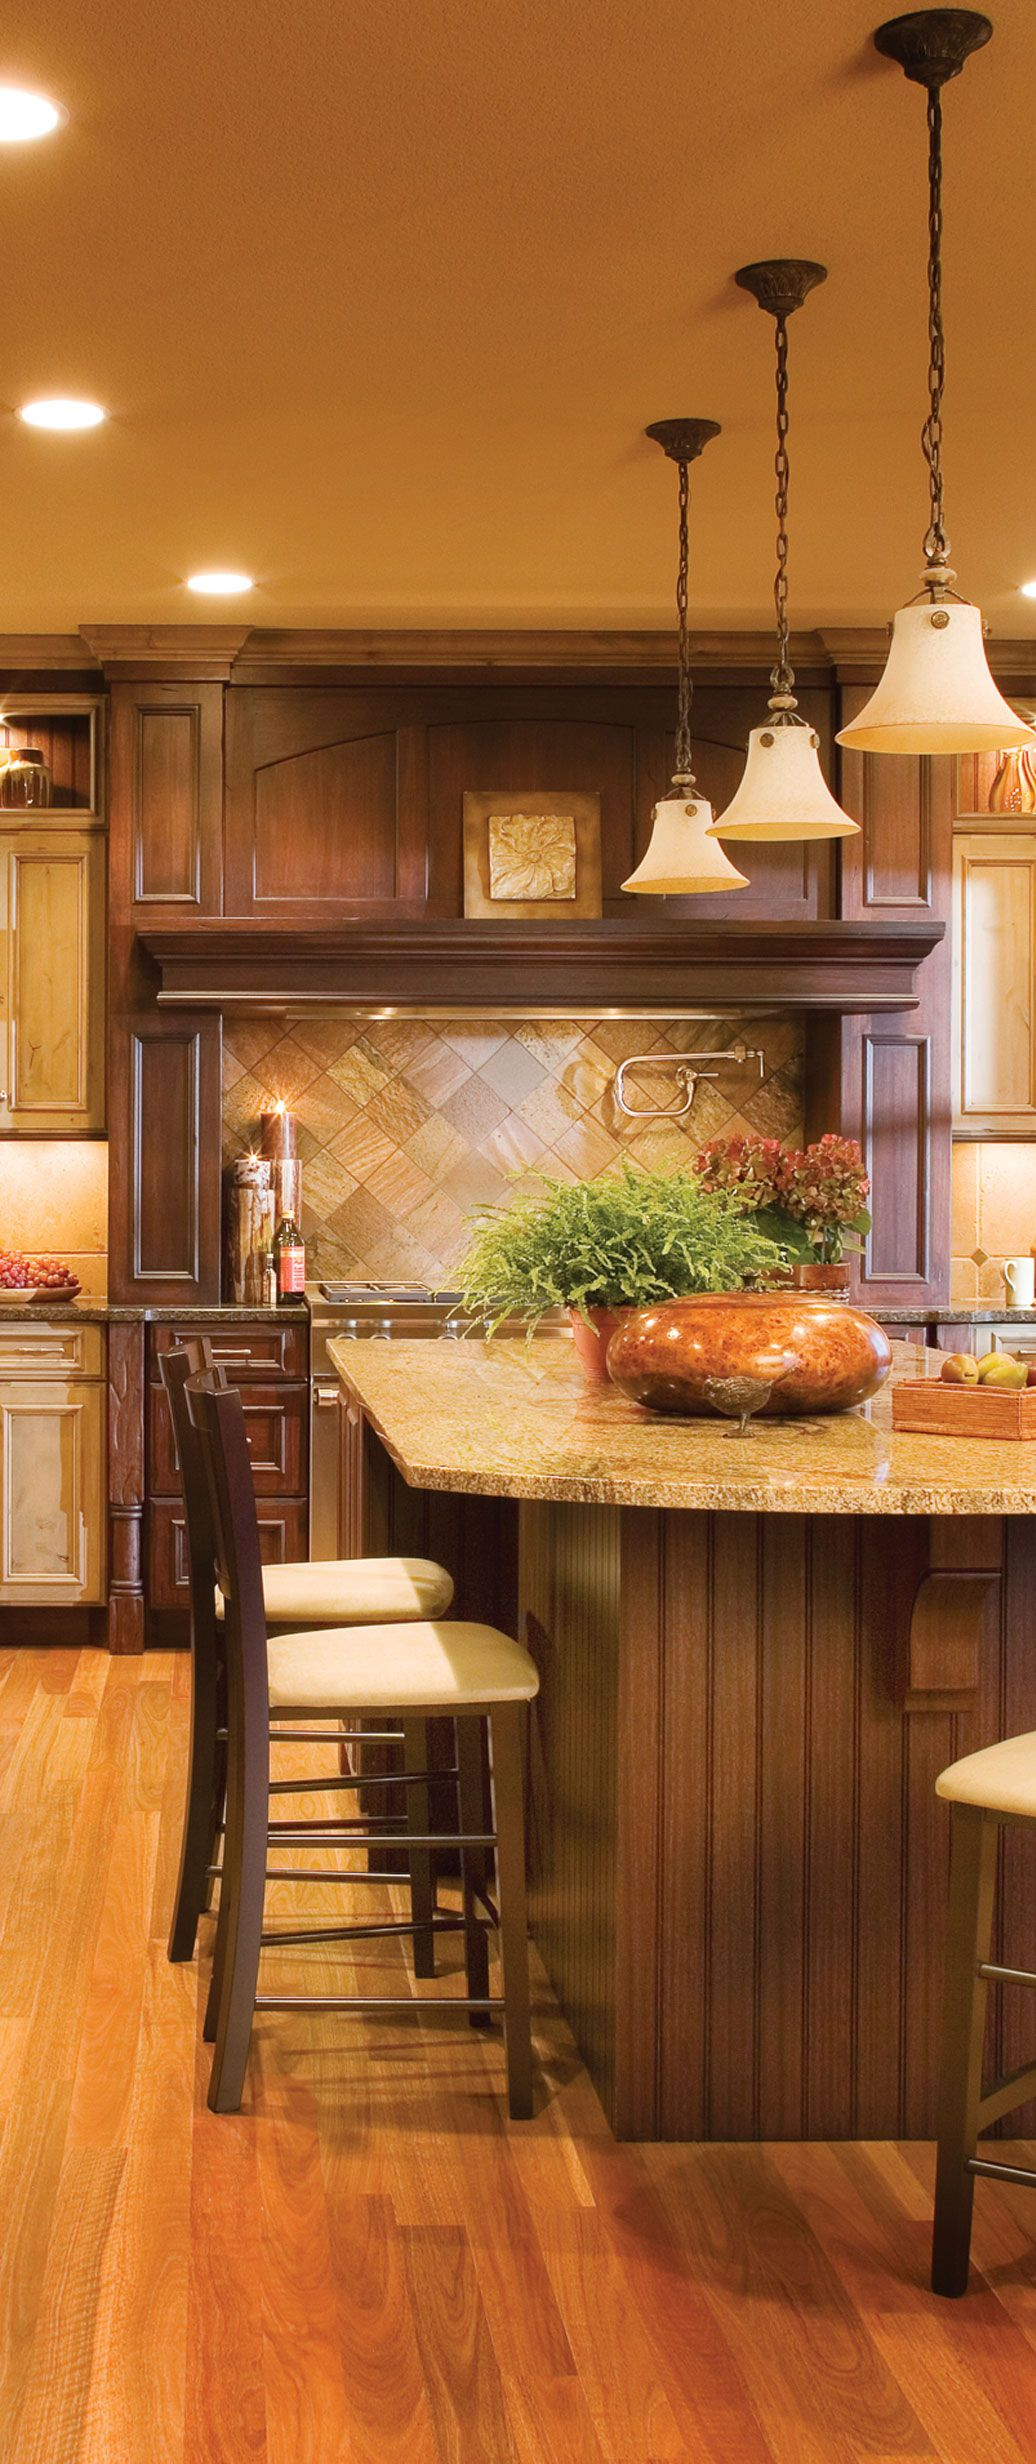 Is Mixing Kitchen Cabinet Finishes Okay Or Not: Mix 2 Different Kinds Of Wood And